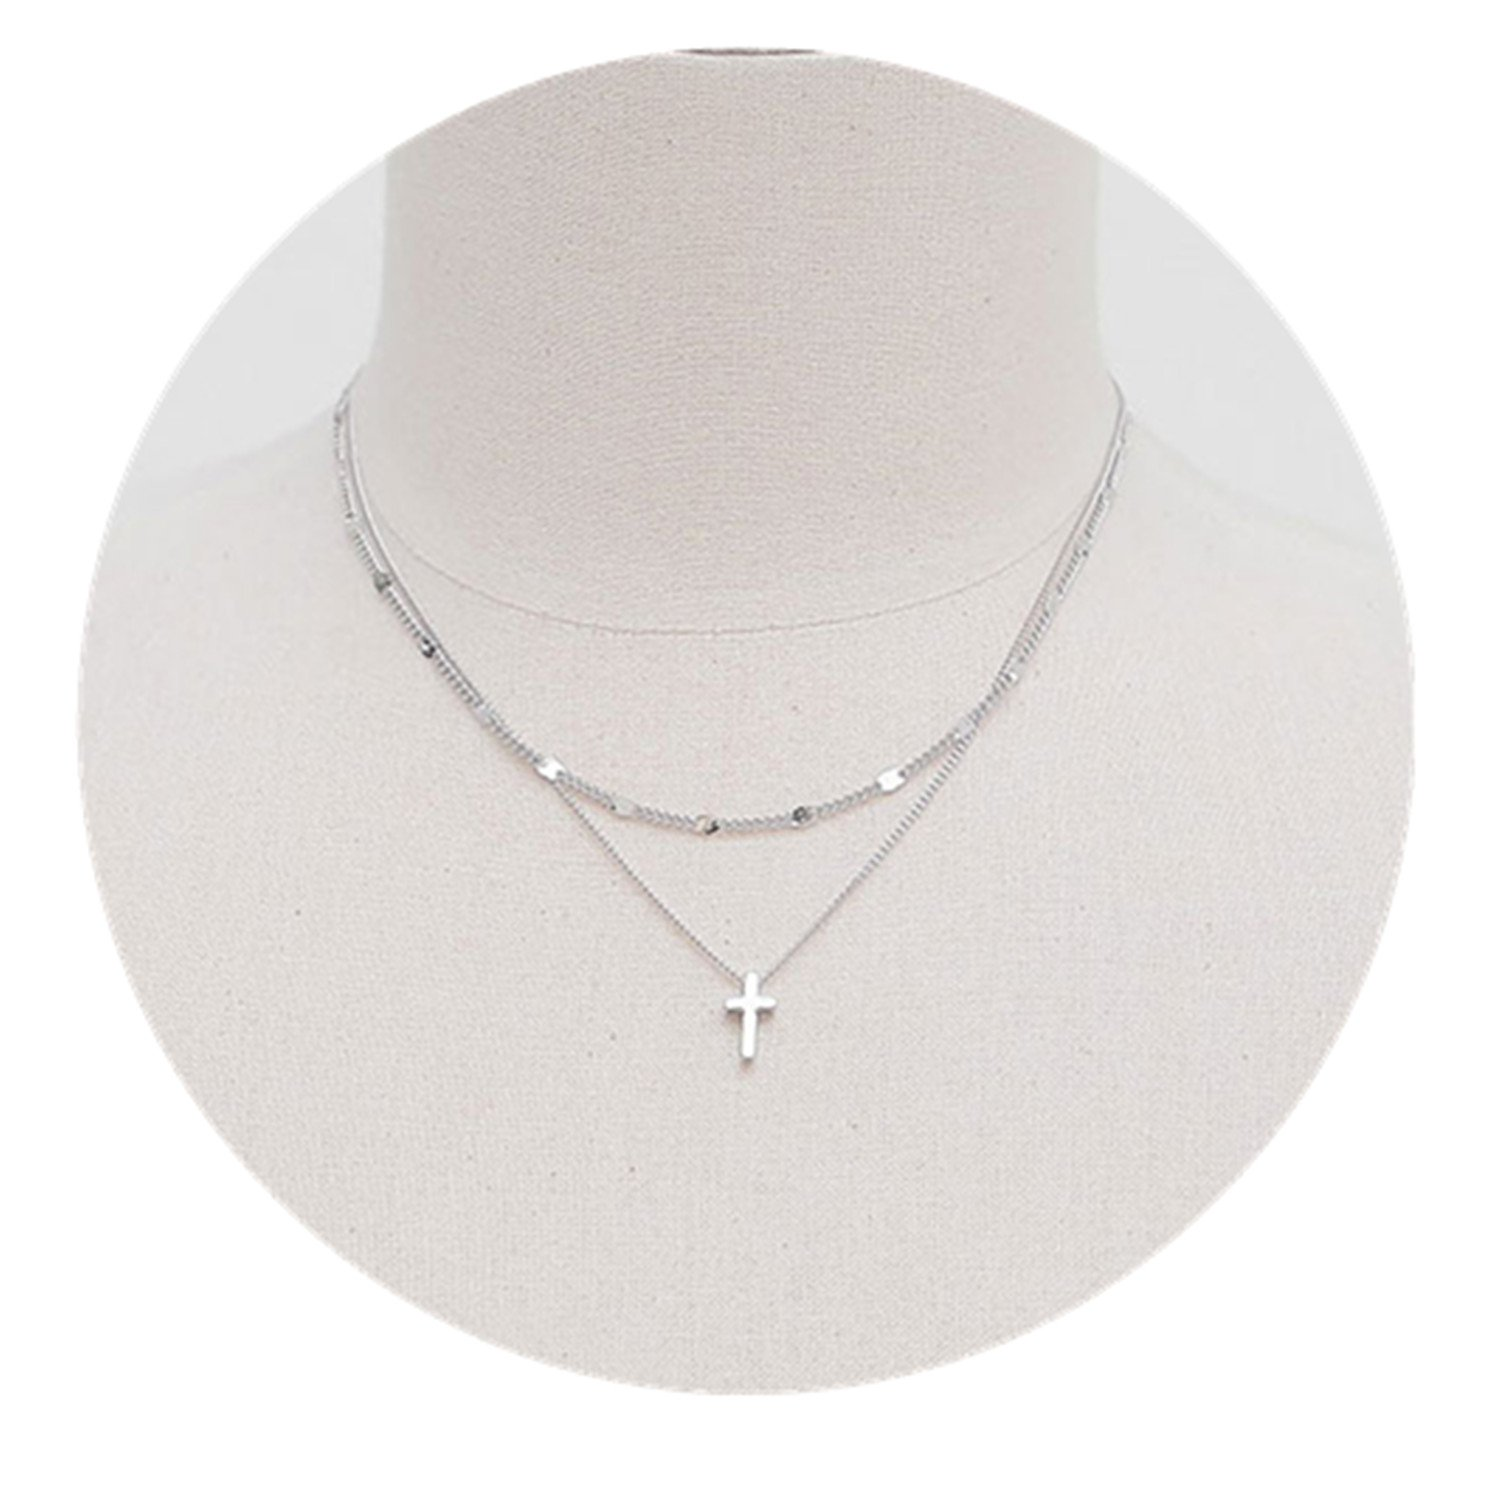 Dot & Line 925 sterling silver double strands layered cross pendant necklace (Silver)